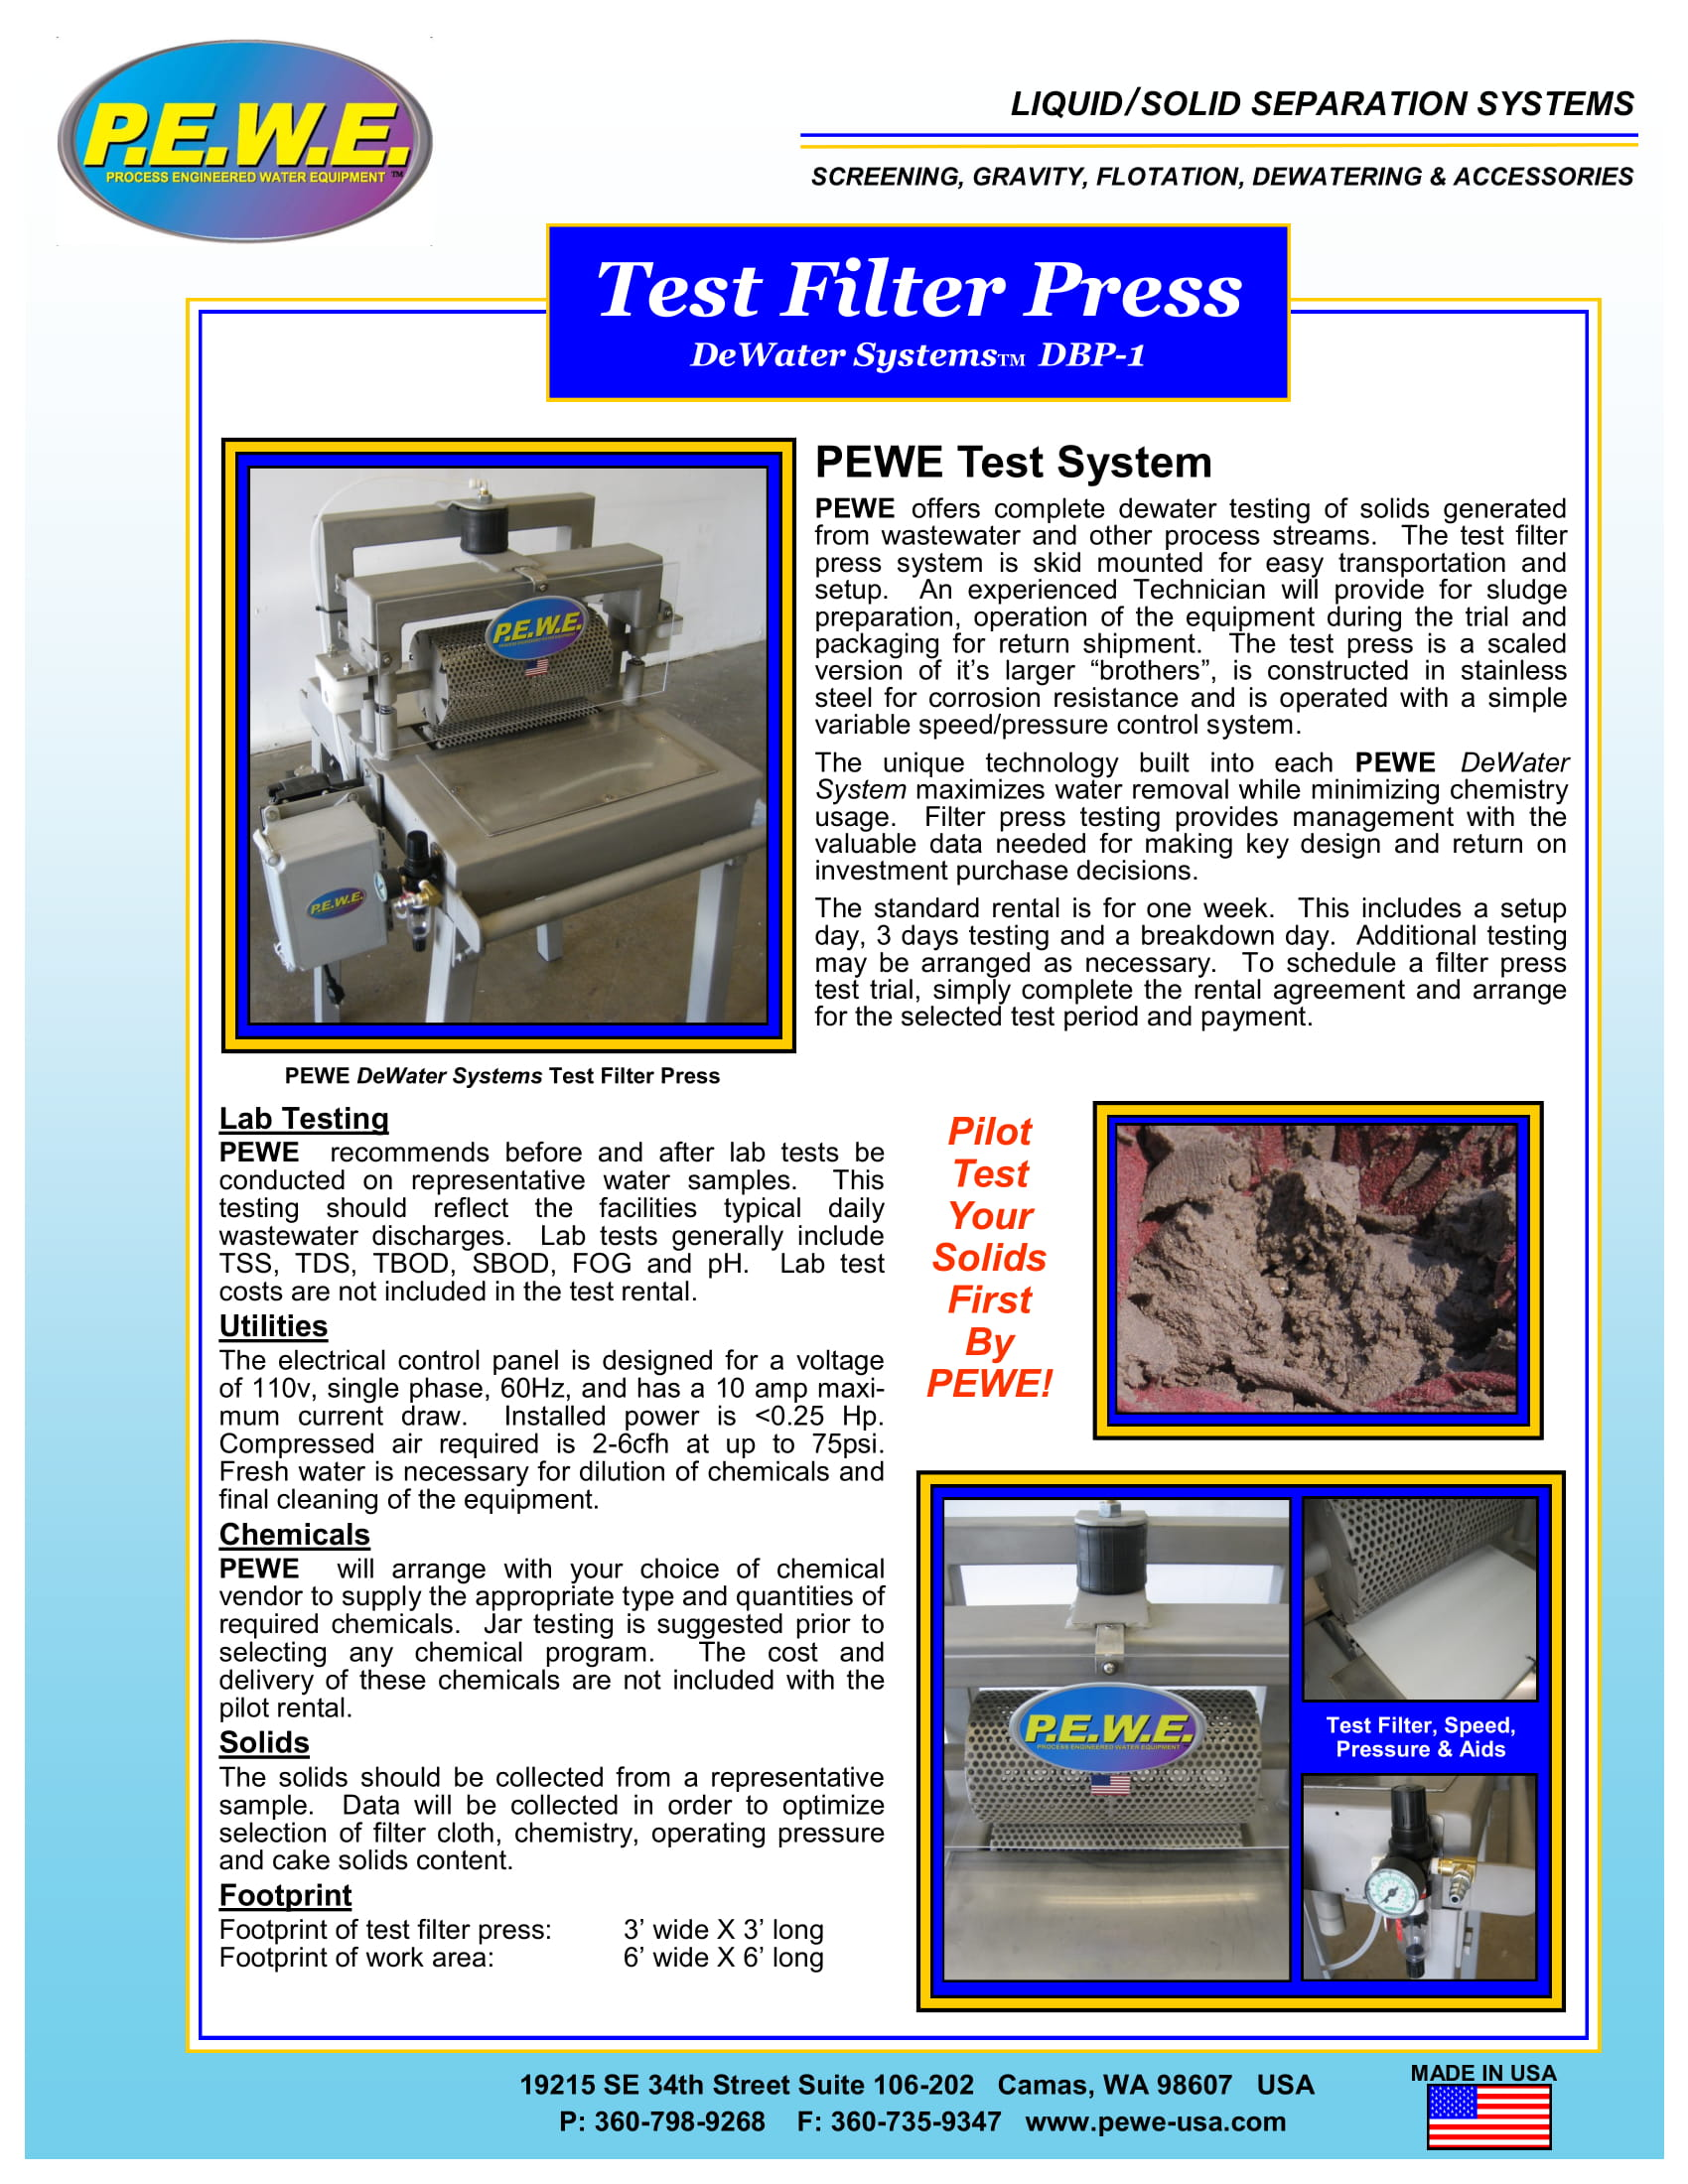 PEWE-DeWater-Press-Test-Brochure-041212-1.jpg